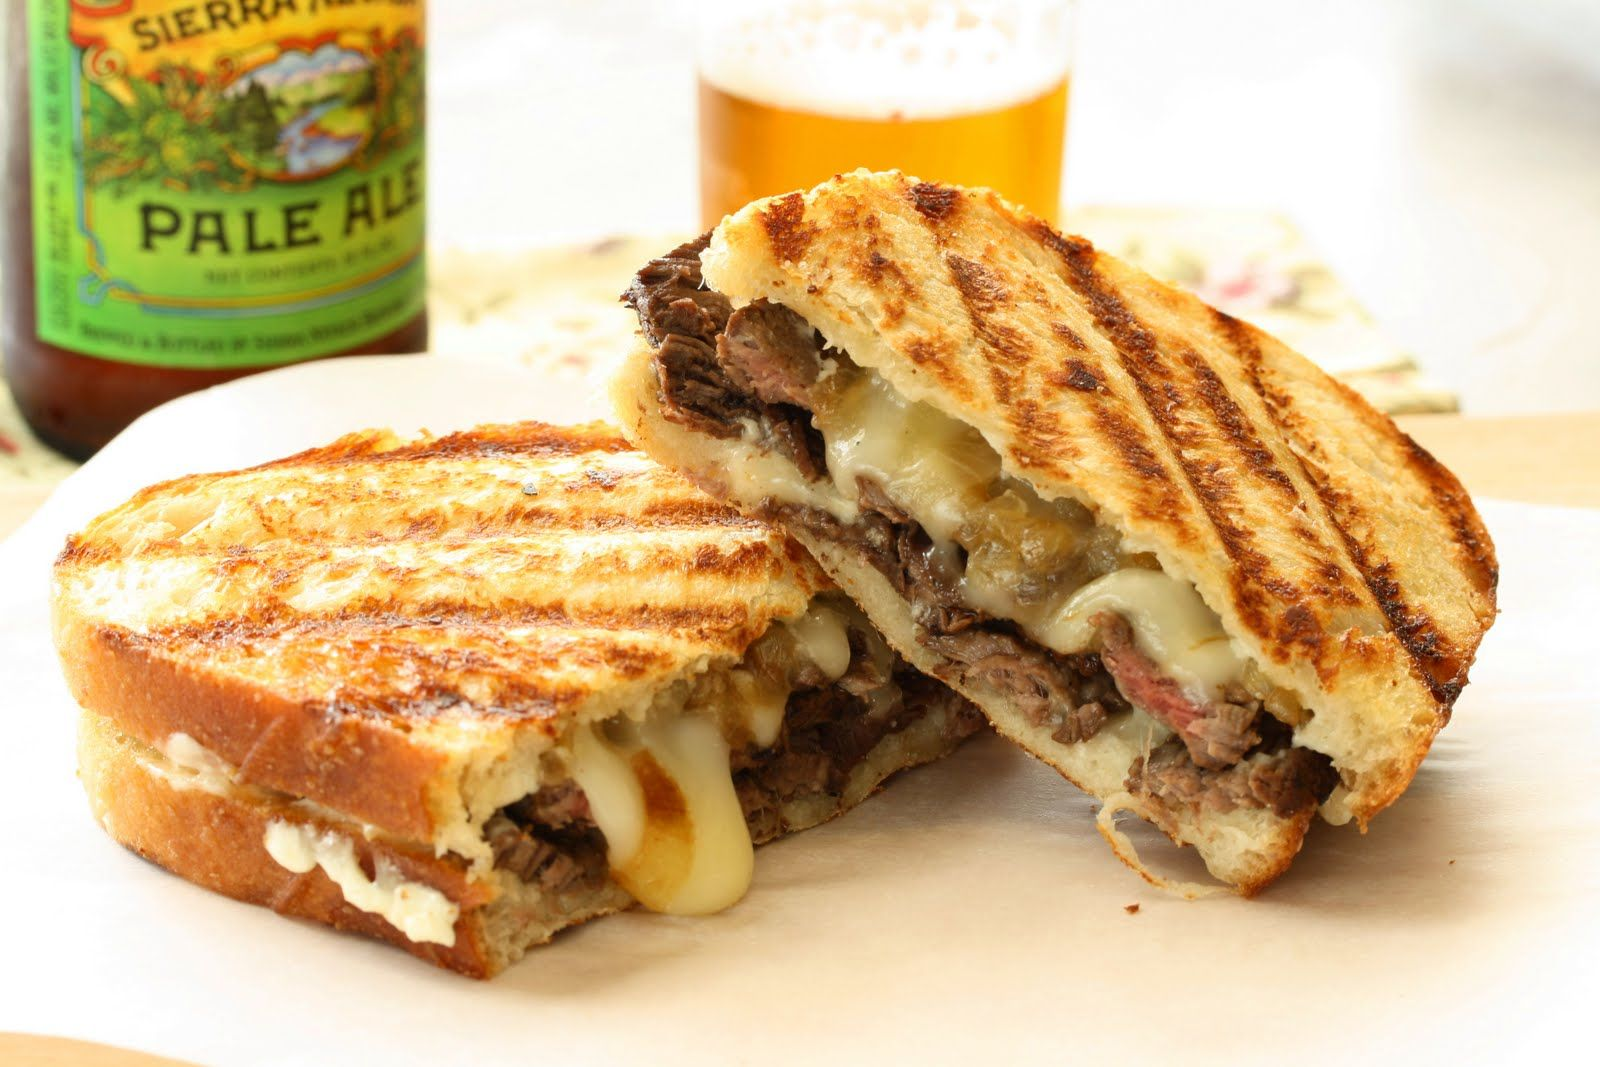 Discussion on this topic: Steak, Avocado and Cheddar Healthy Panini Sandwich, steak-avocado-and-cheddar-healthy-panini-sandwich/